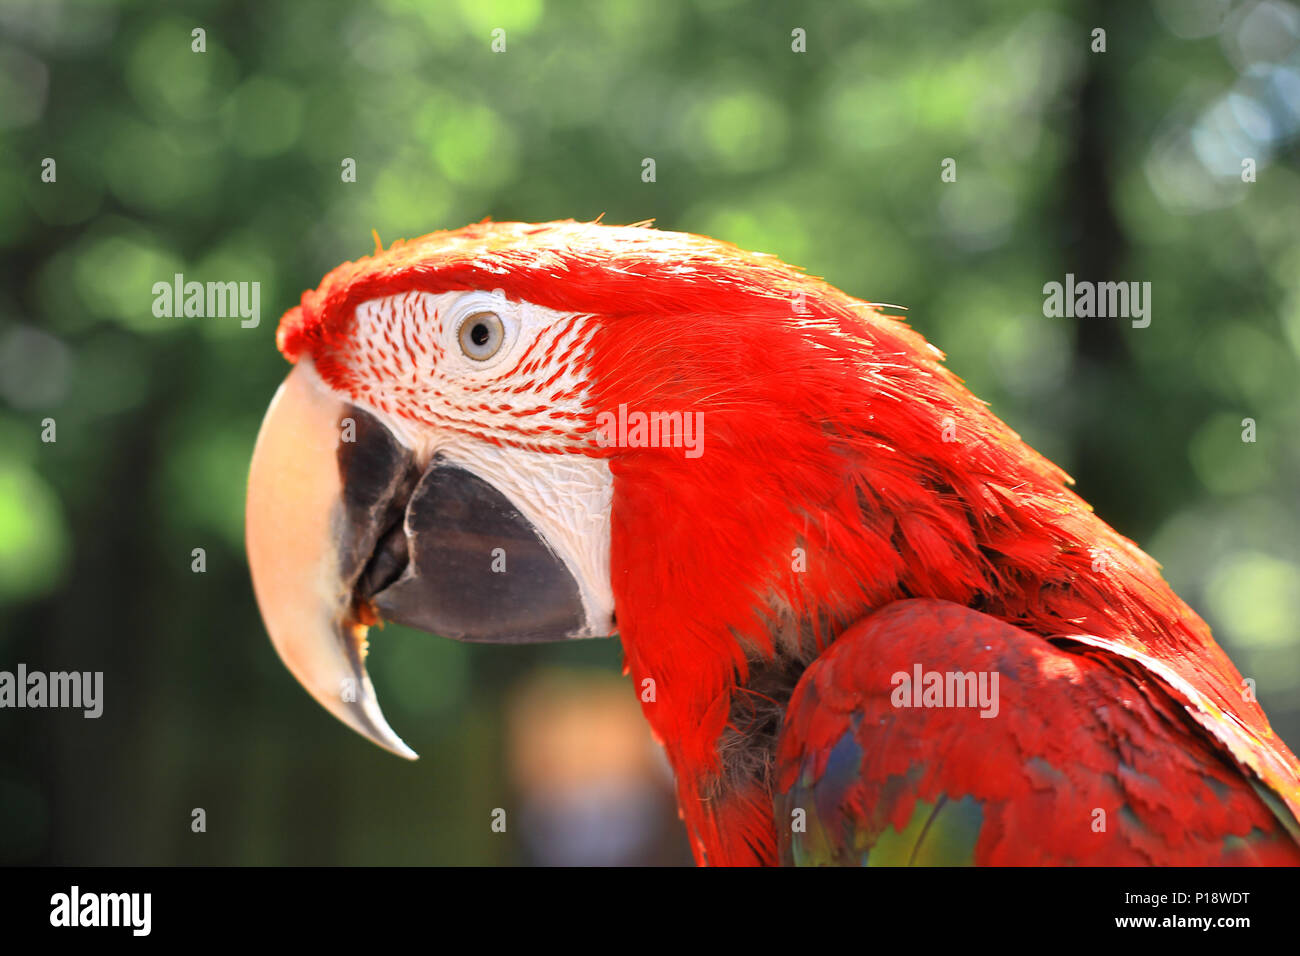 close up. head, macaw parrot on blurred background - Stock Image